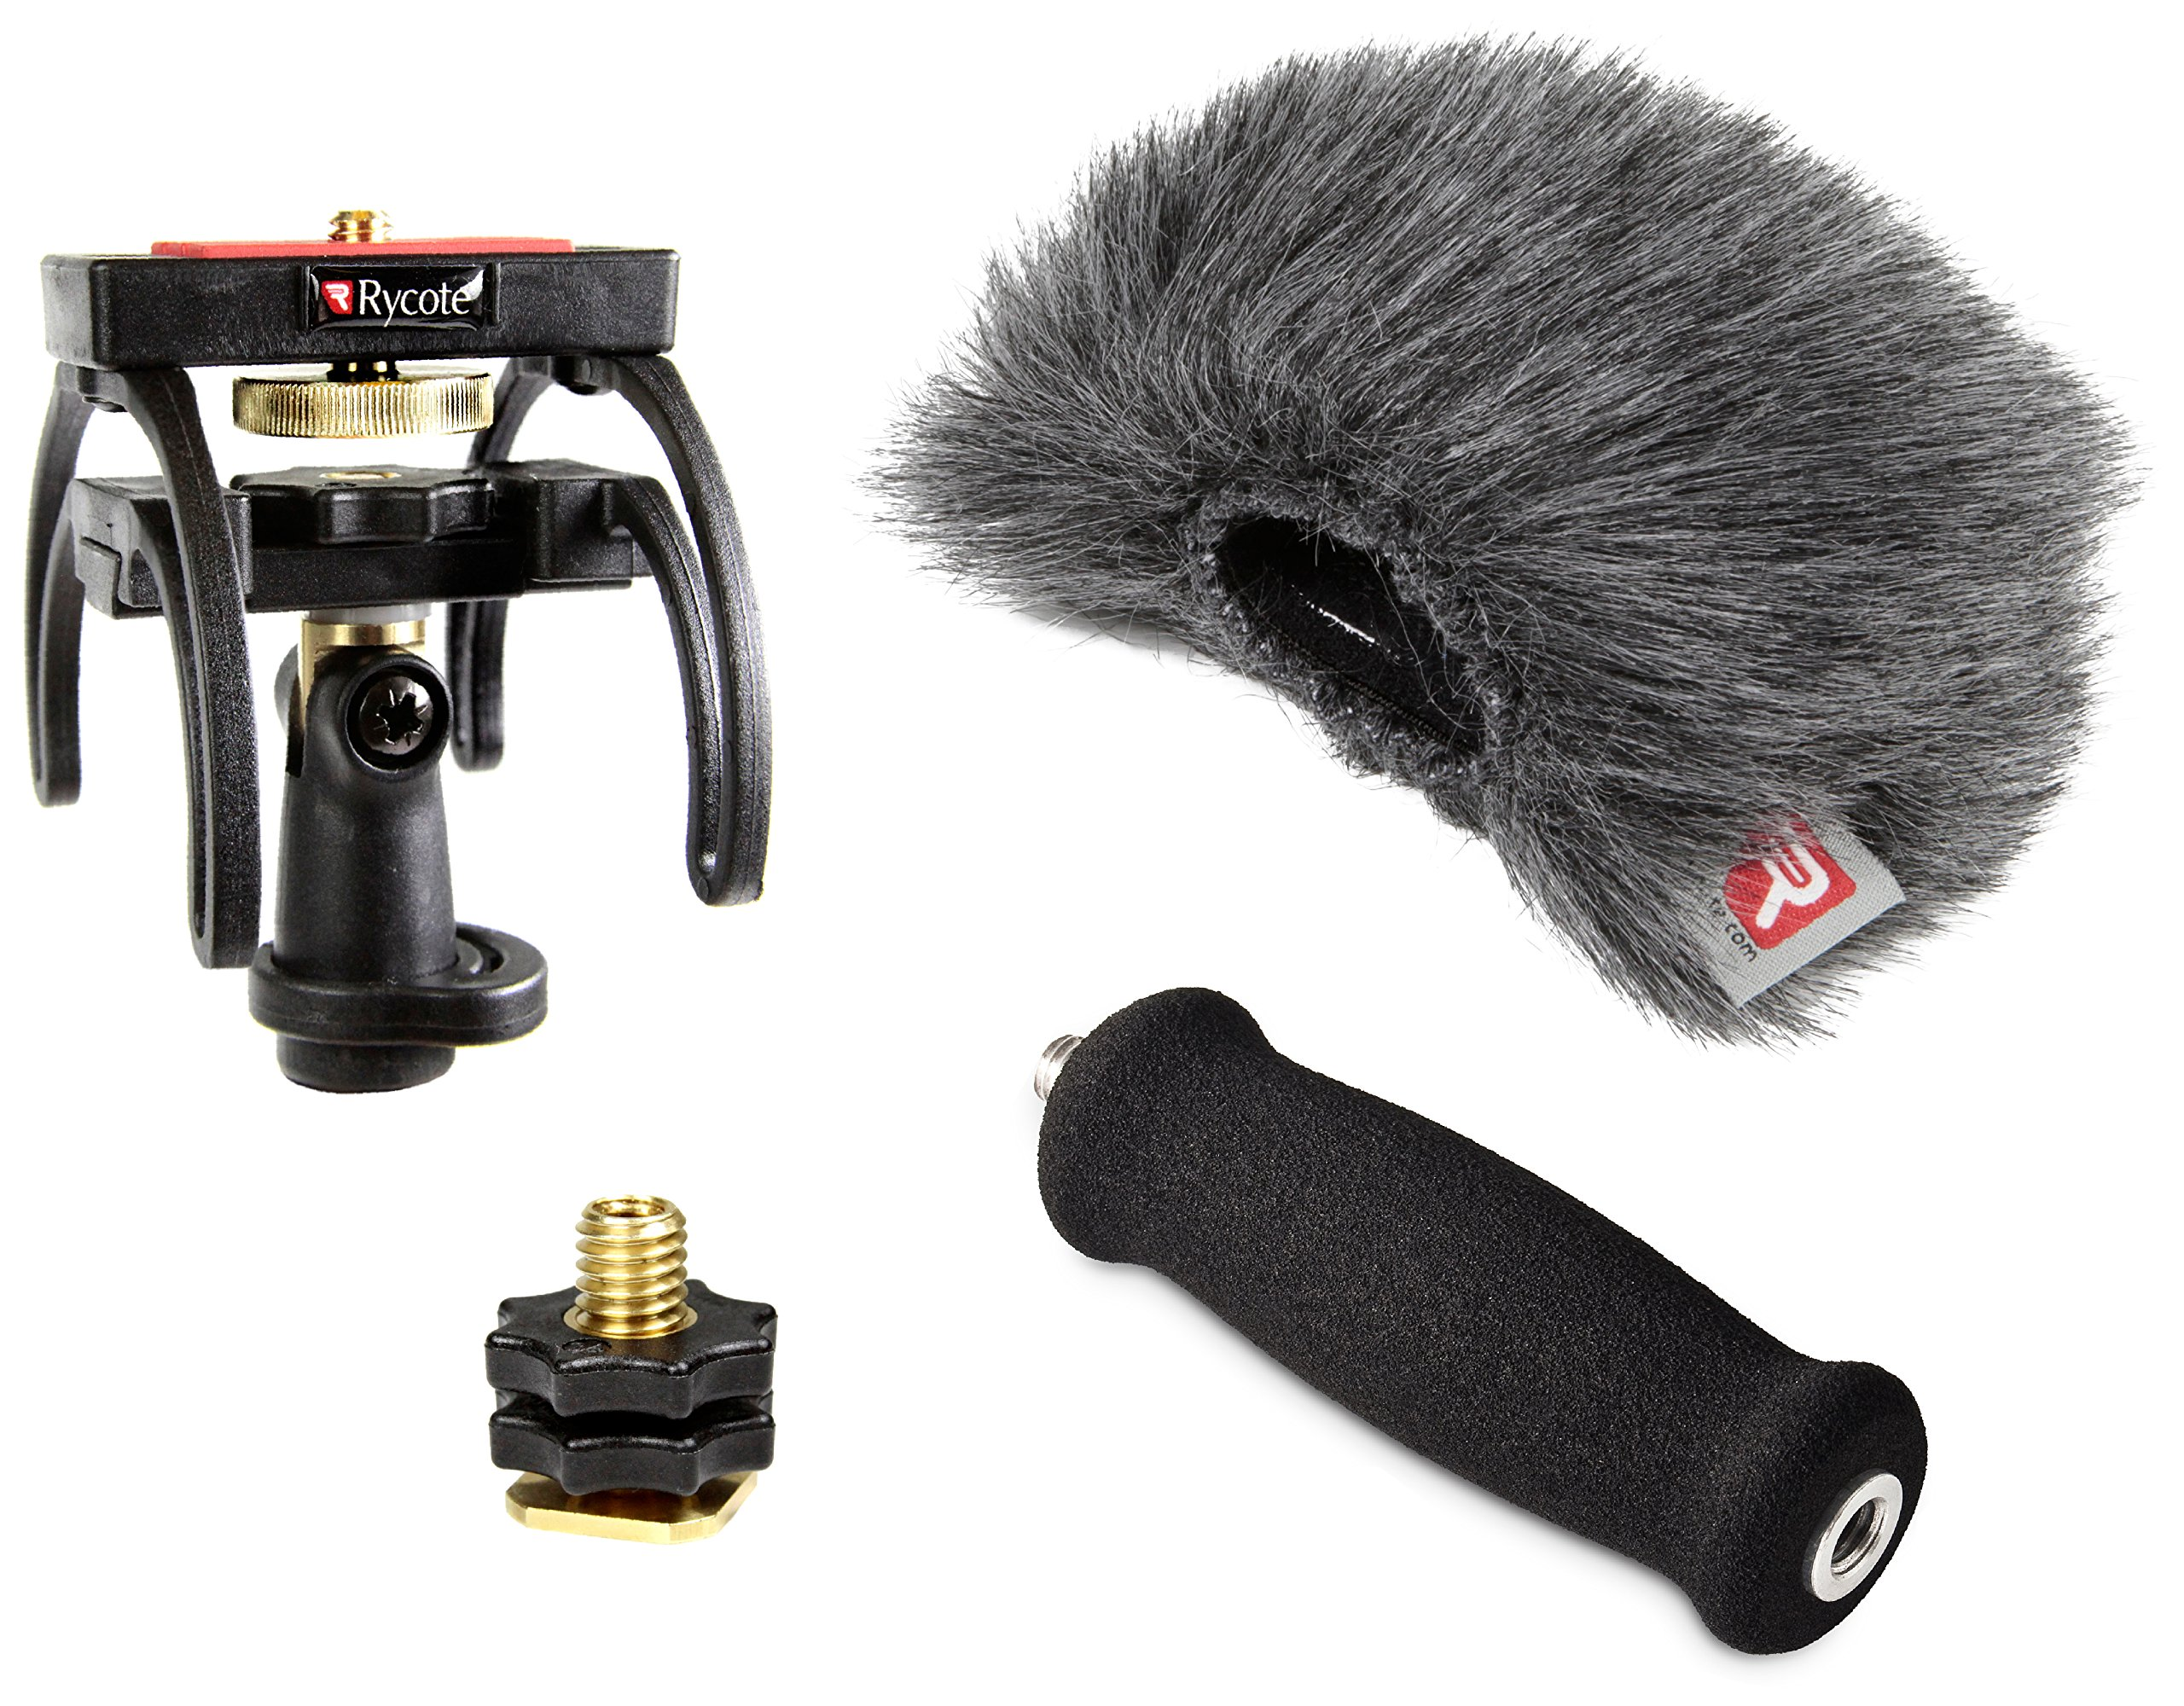 Rycote Portable Recorder Audio Kit for Zoom H1 Digital Recorder, Includes Suspension Mount, Mini Windjammer, Extension Handle, Swivel Adapter